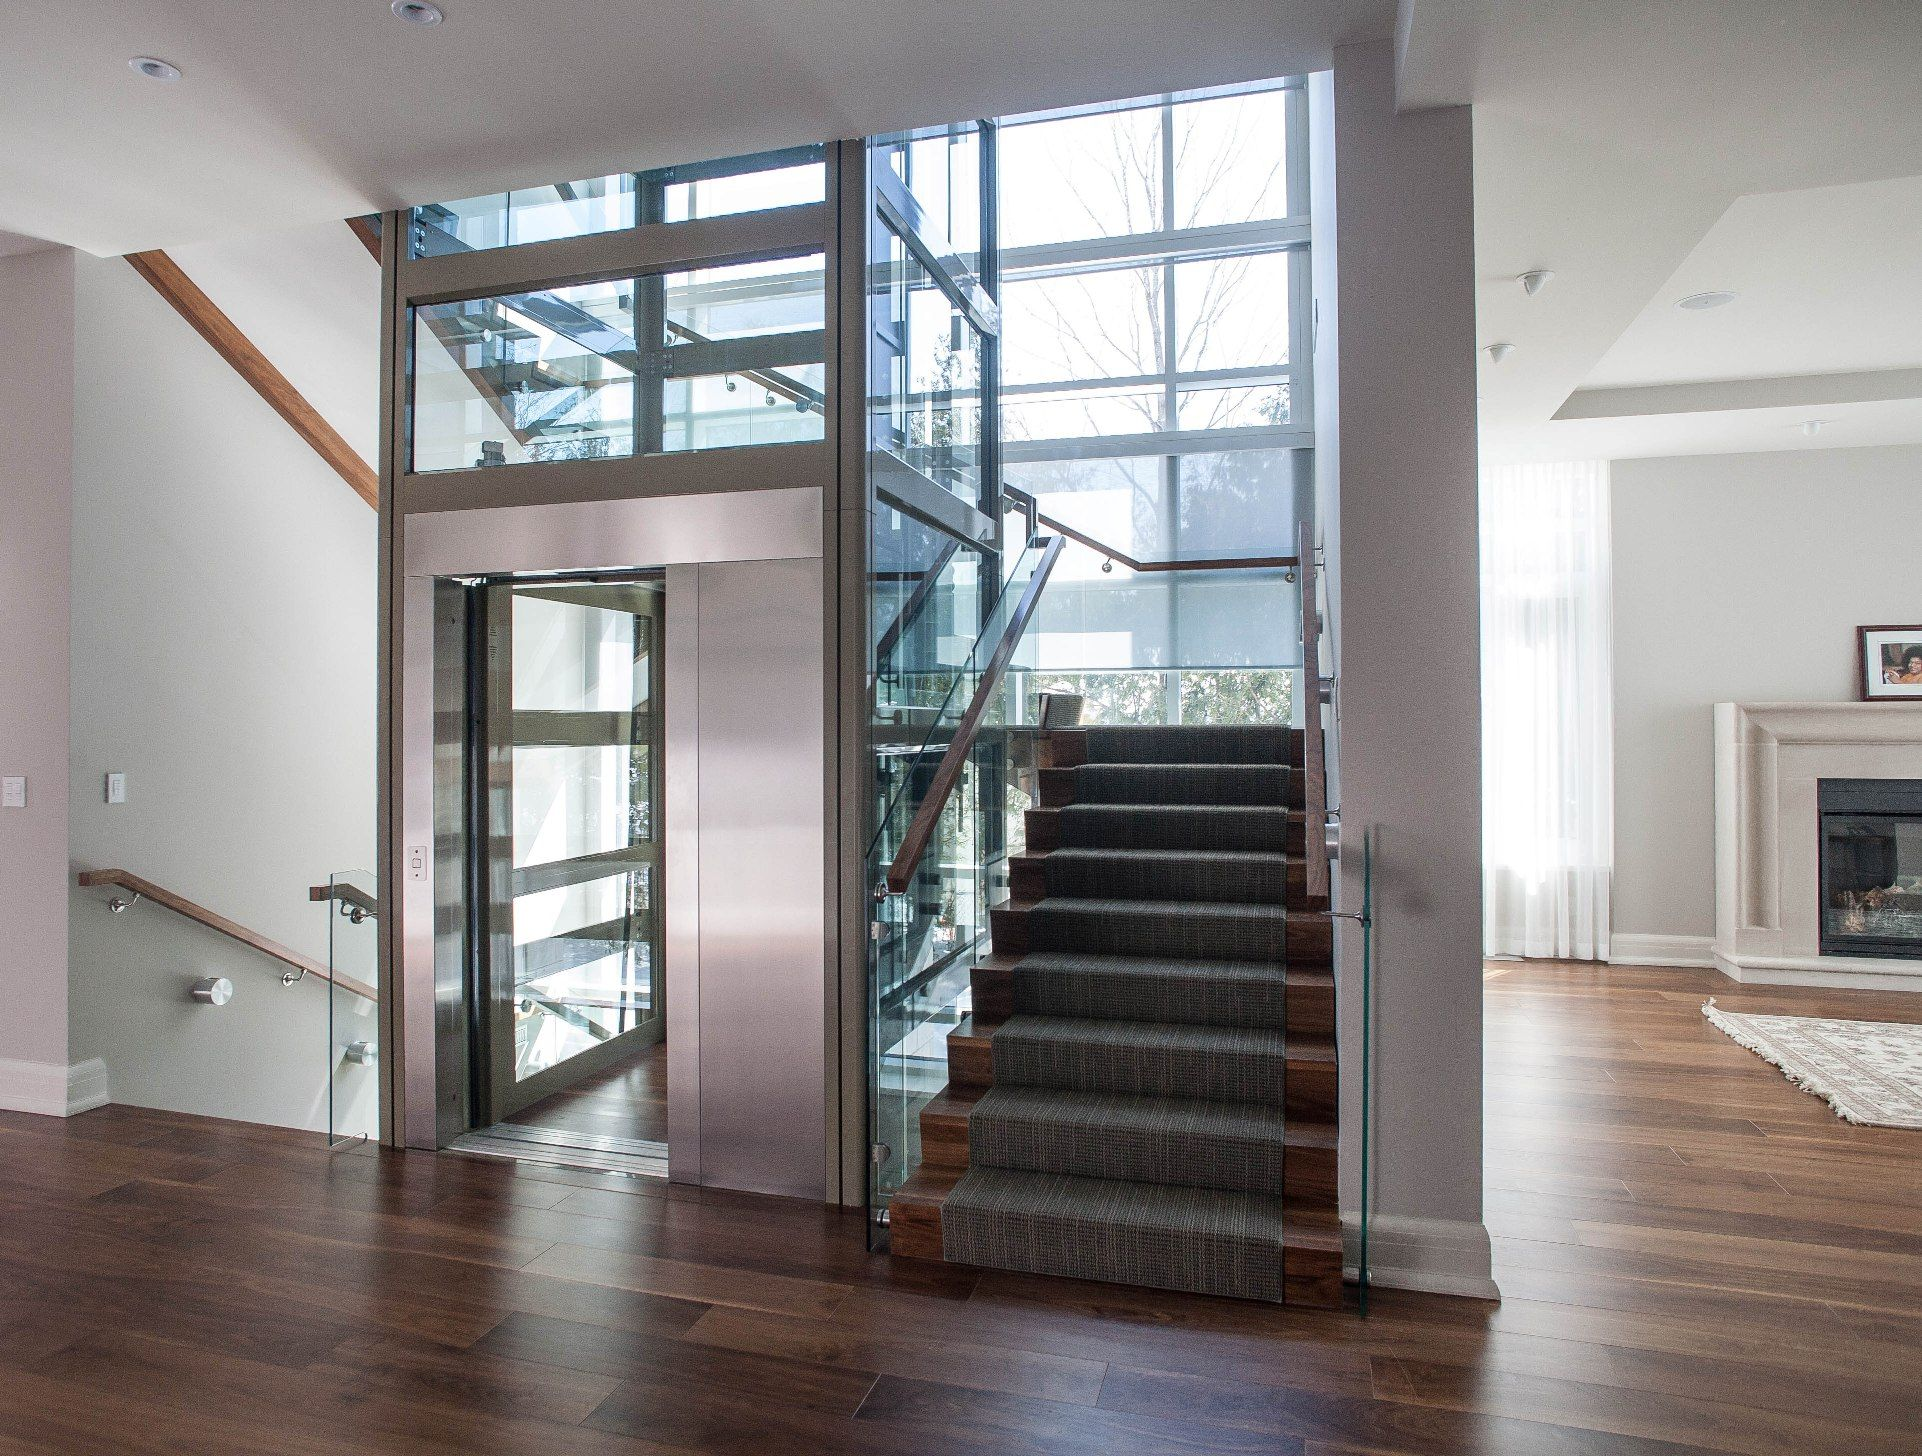 Congratulations To Upper Canada Elevators Winners Of The Garaventa Lift Project Of The Month For Their Submiss House Elevation Stairway Design Elevator Design